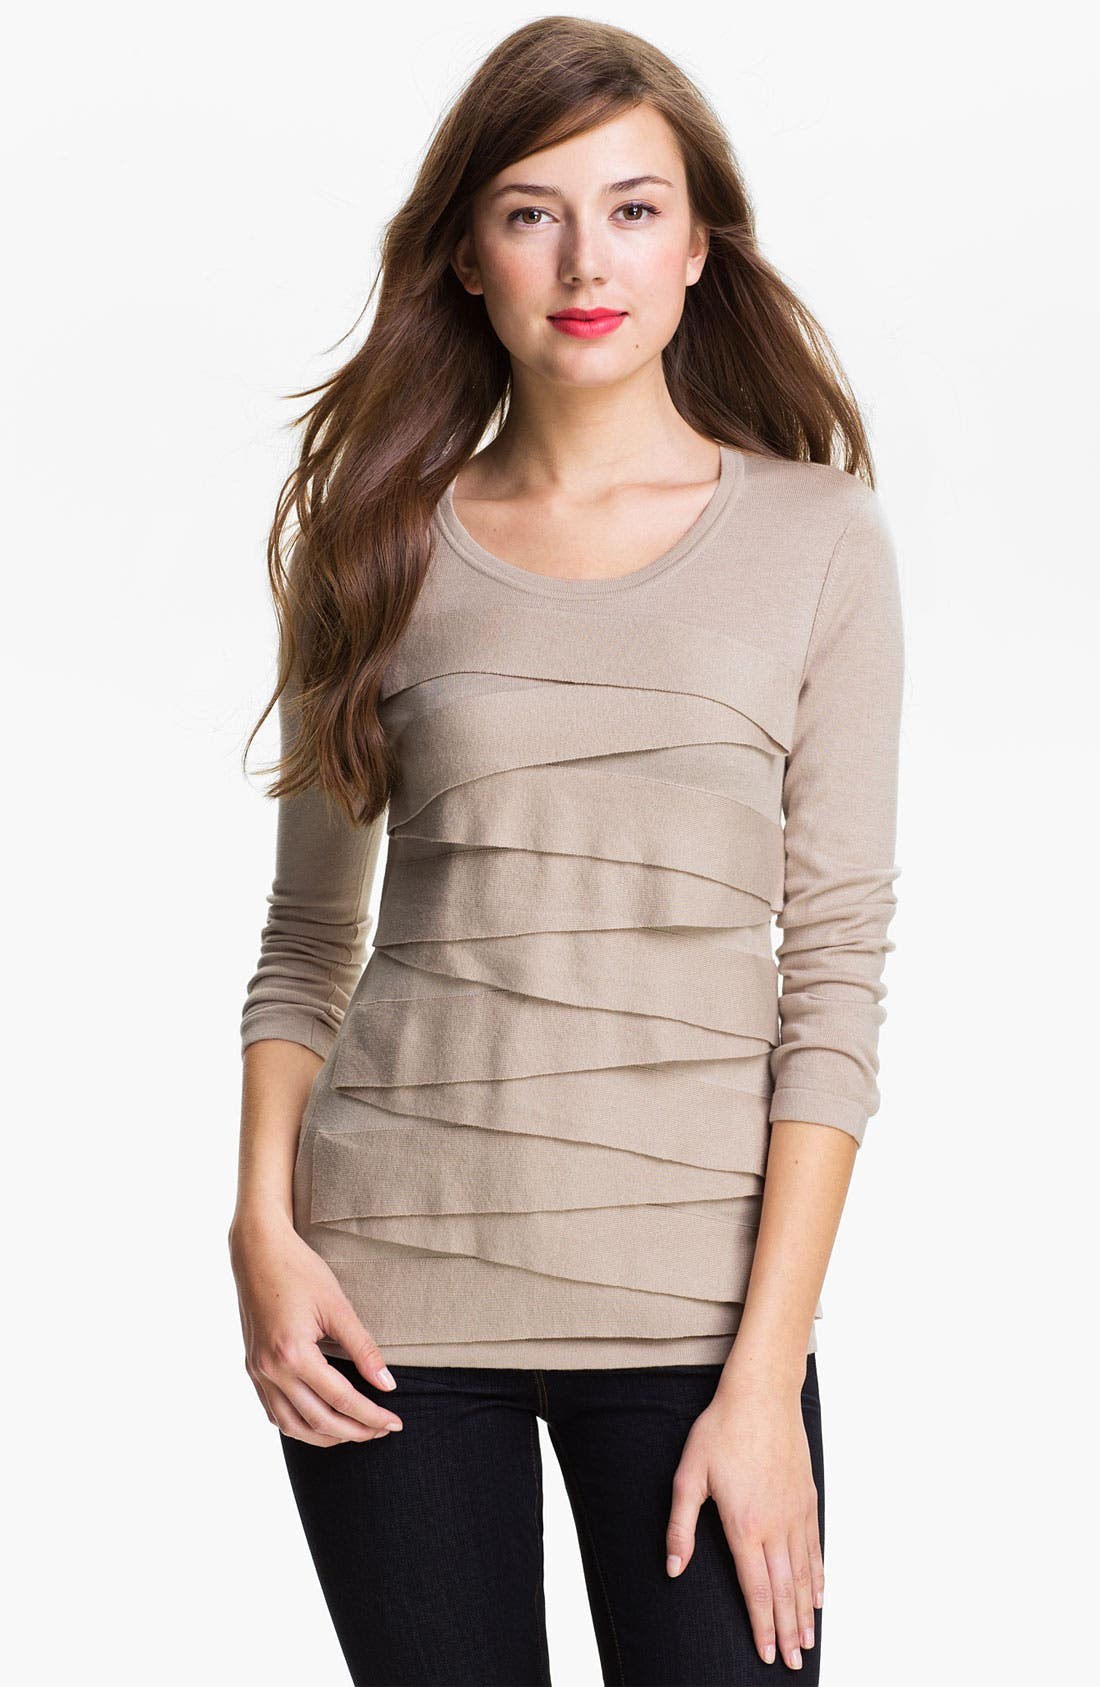 Alternate Image 1 Selected - Vince Camuto Zigzag Sweater (Online Exclusive)